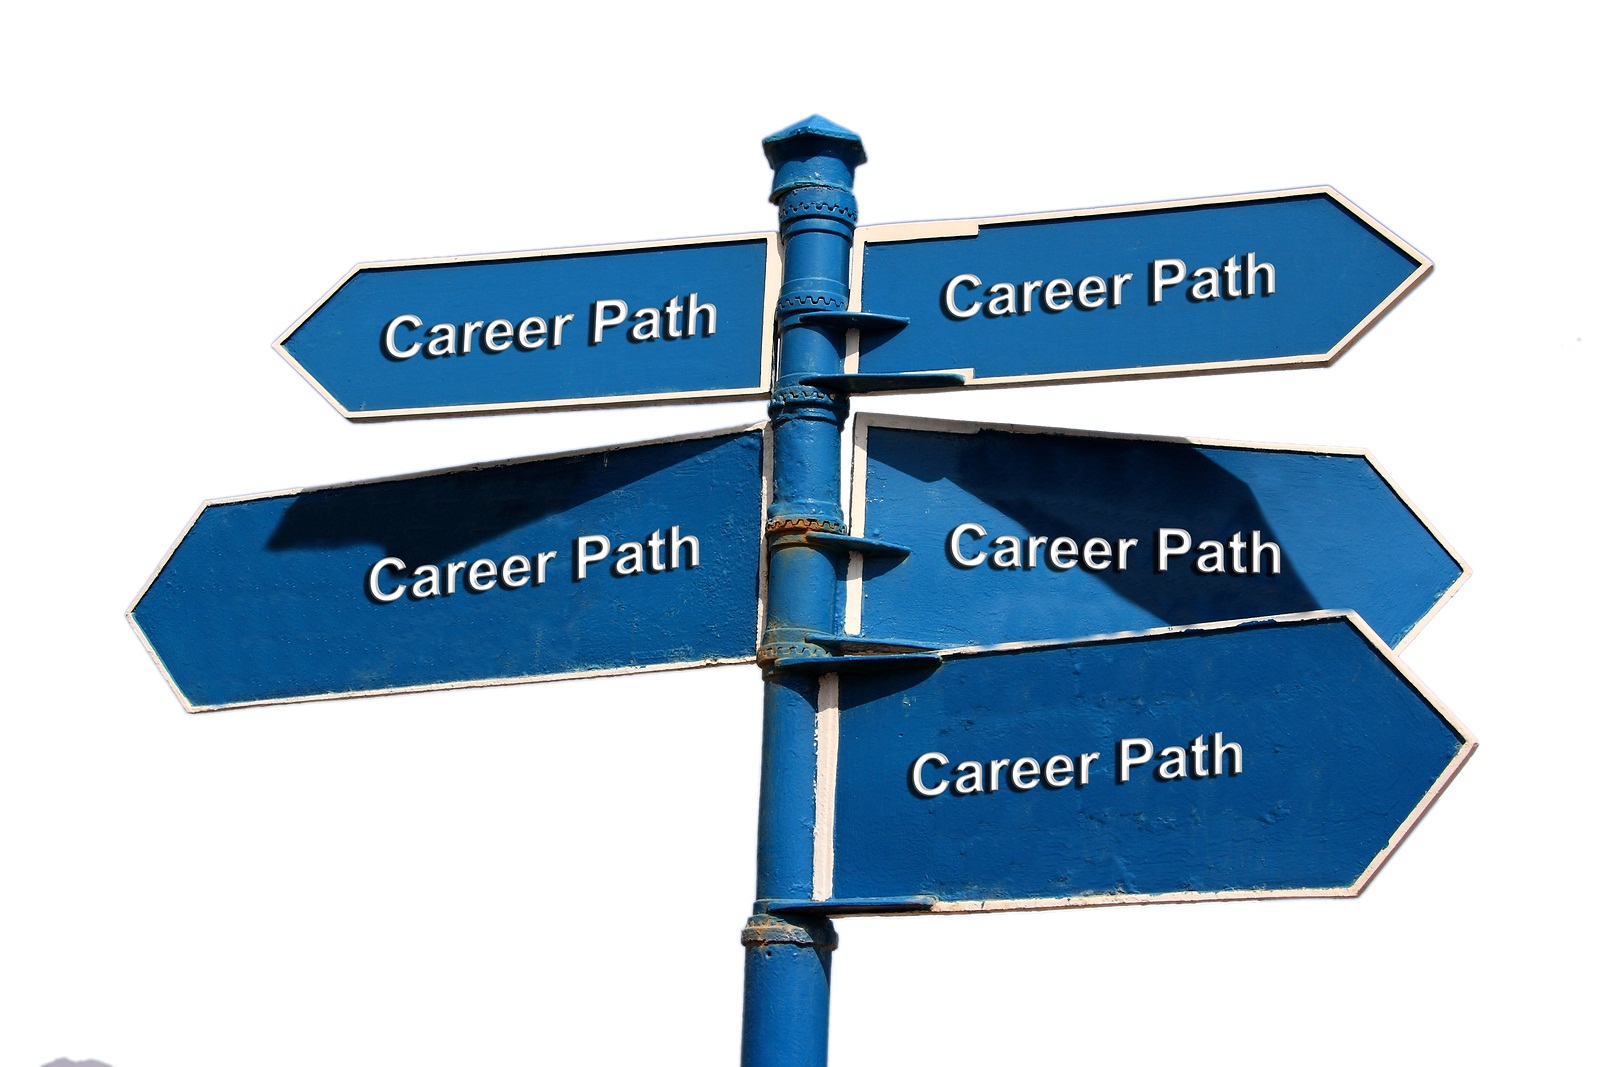 phd career path tracking cirge center for innovation graduate clipart christian graduate clipart transparent